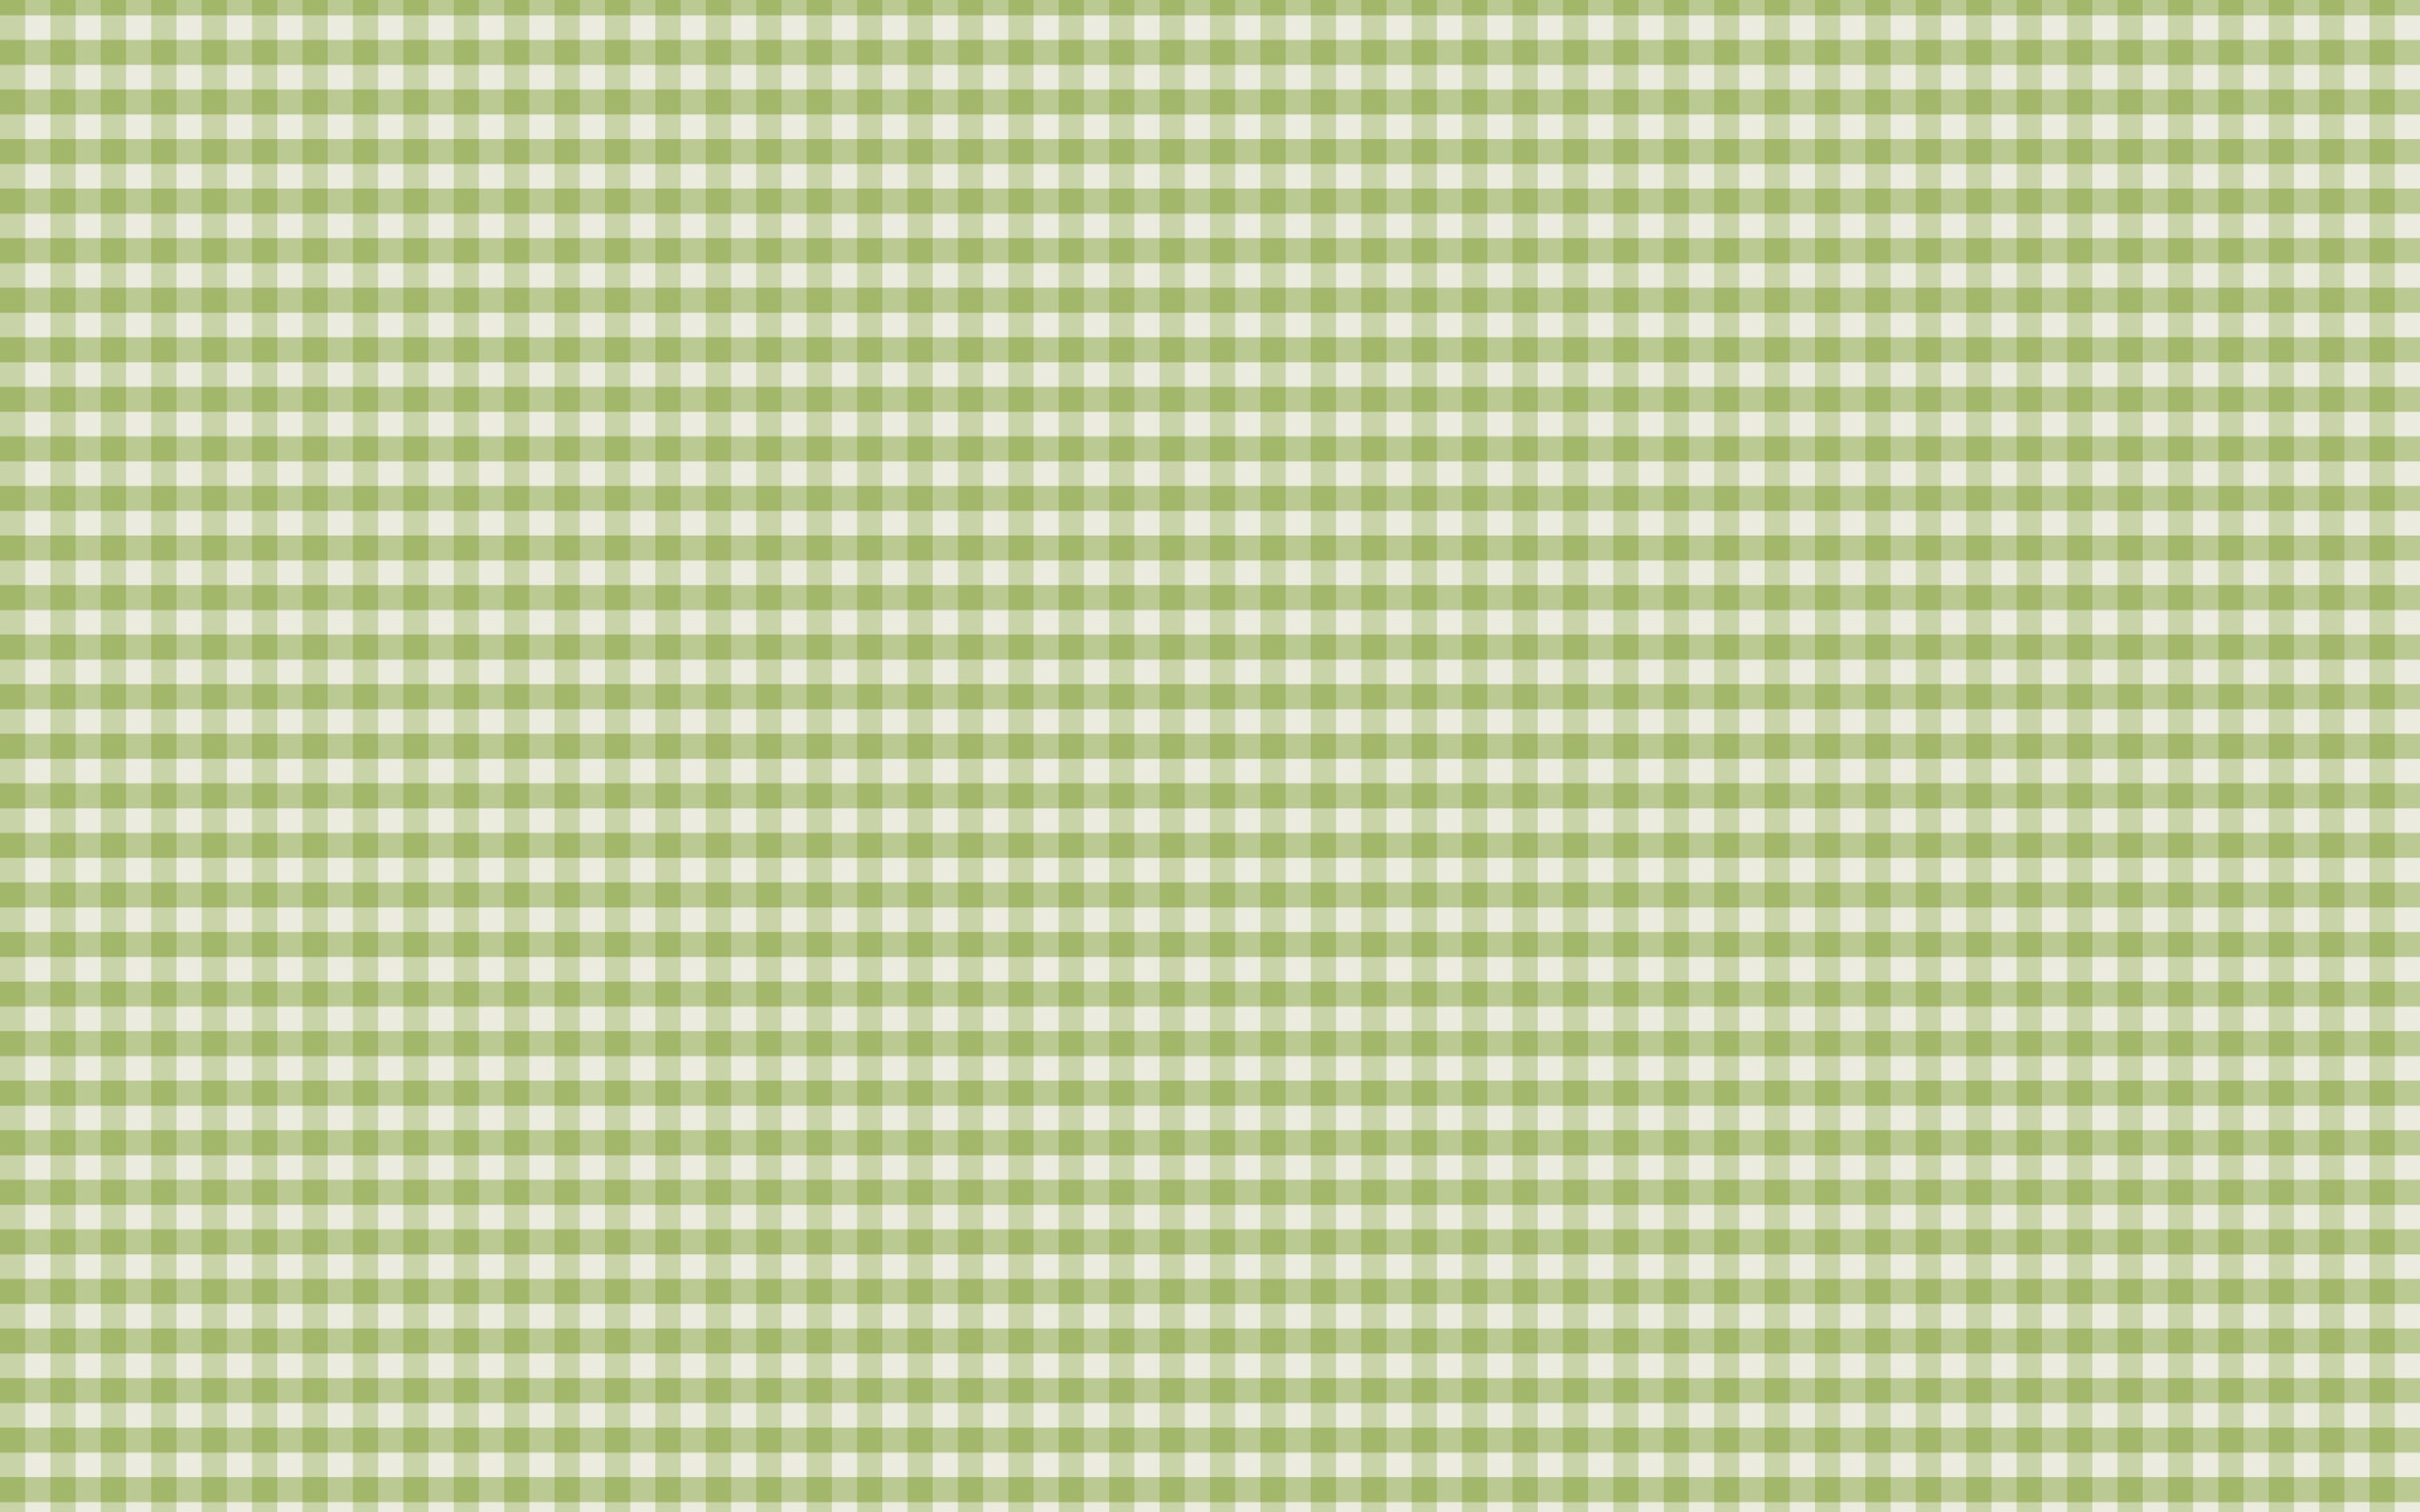 Green Plaid Wallpaper